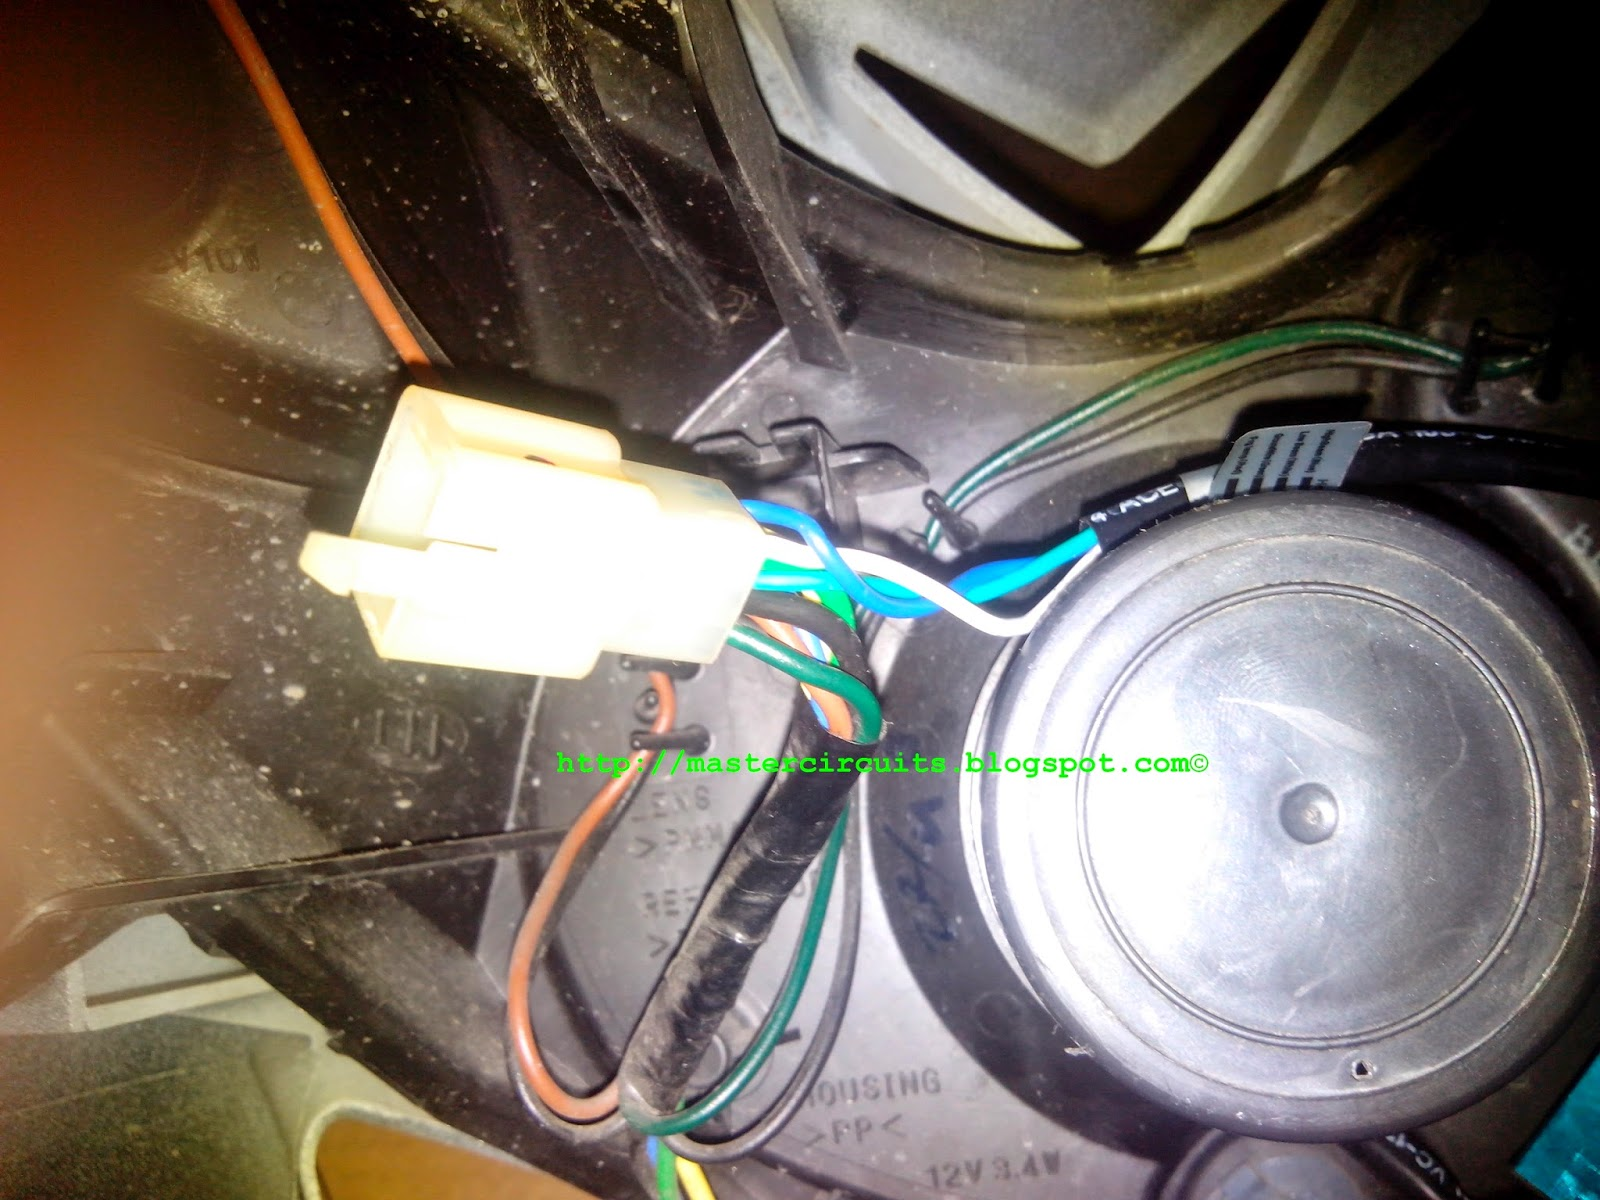 medium resolution of  wires to preserve the original wiring in case problem arises with the led replacement and always ready for the refitting of the original bulb headlight